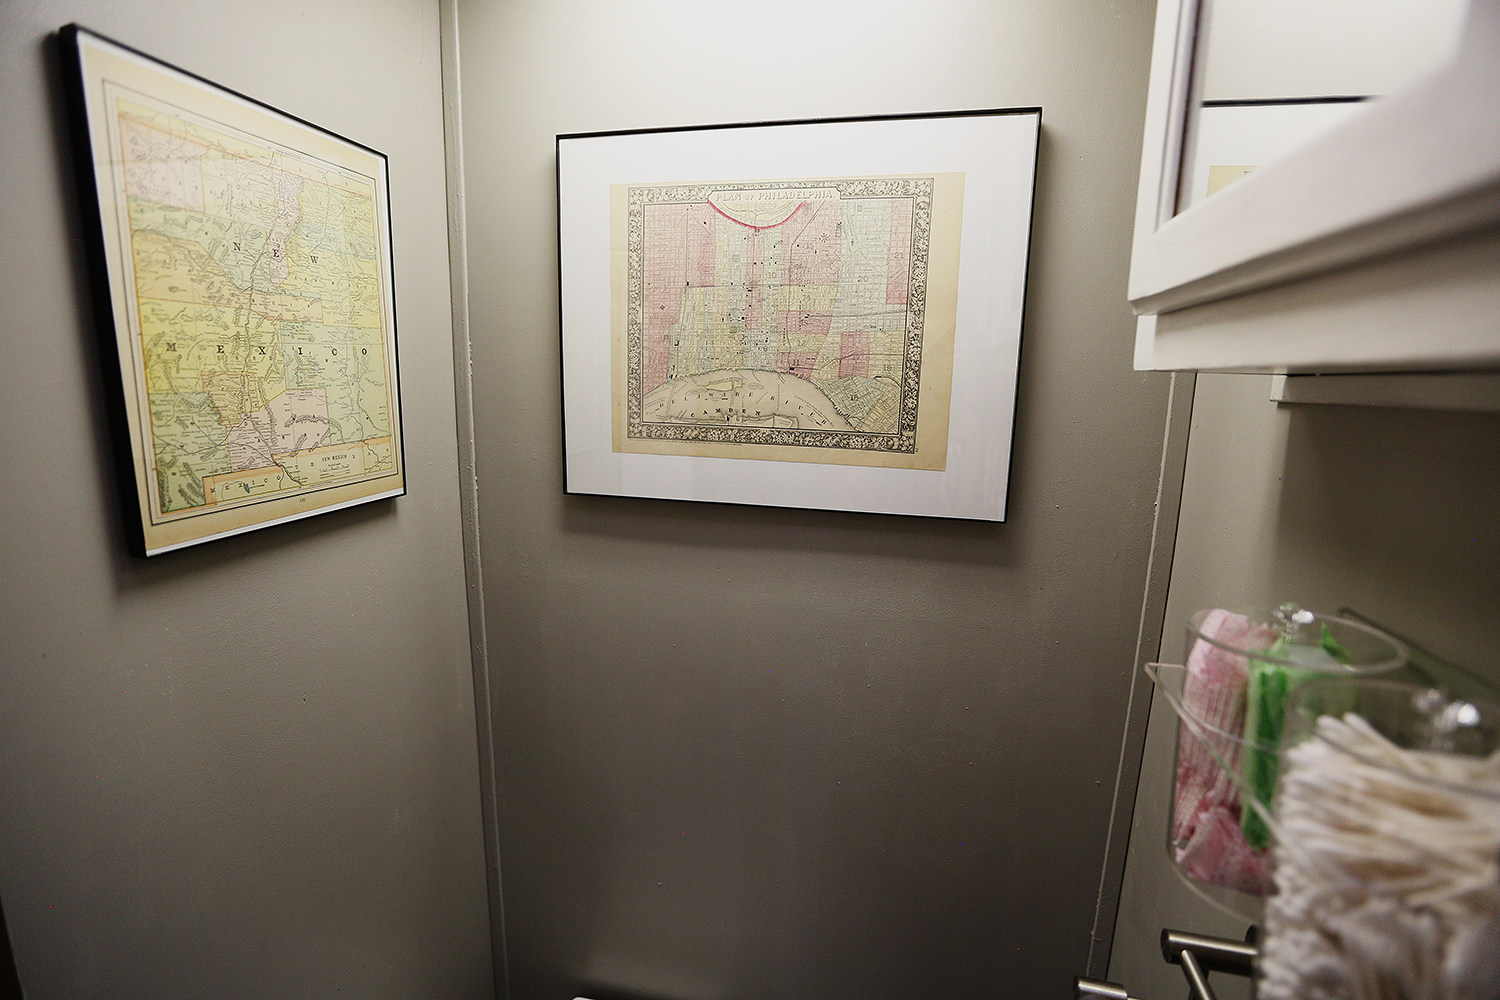 Bathroom cabinets/walls sanded and painted, installed canisters underneath the cabinets for additional and easy-access storage, hung old 1800s-era framed maps of Philadelphia and New Mexico we picked up at Powell's Books in Portland several years back (saved them for this very purpose!)